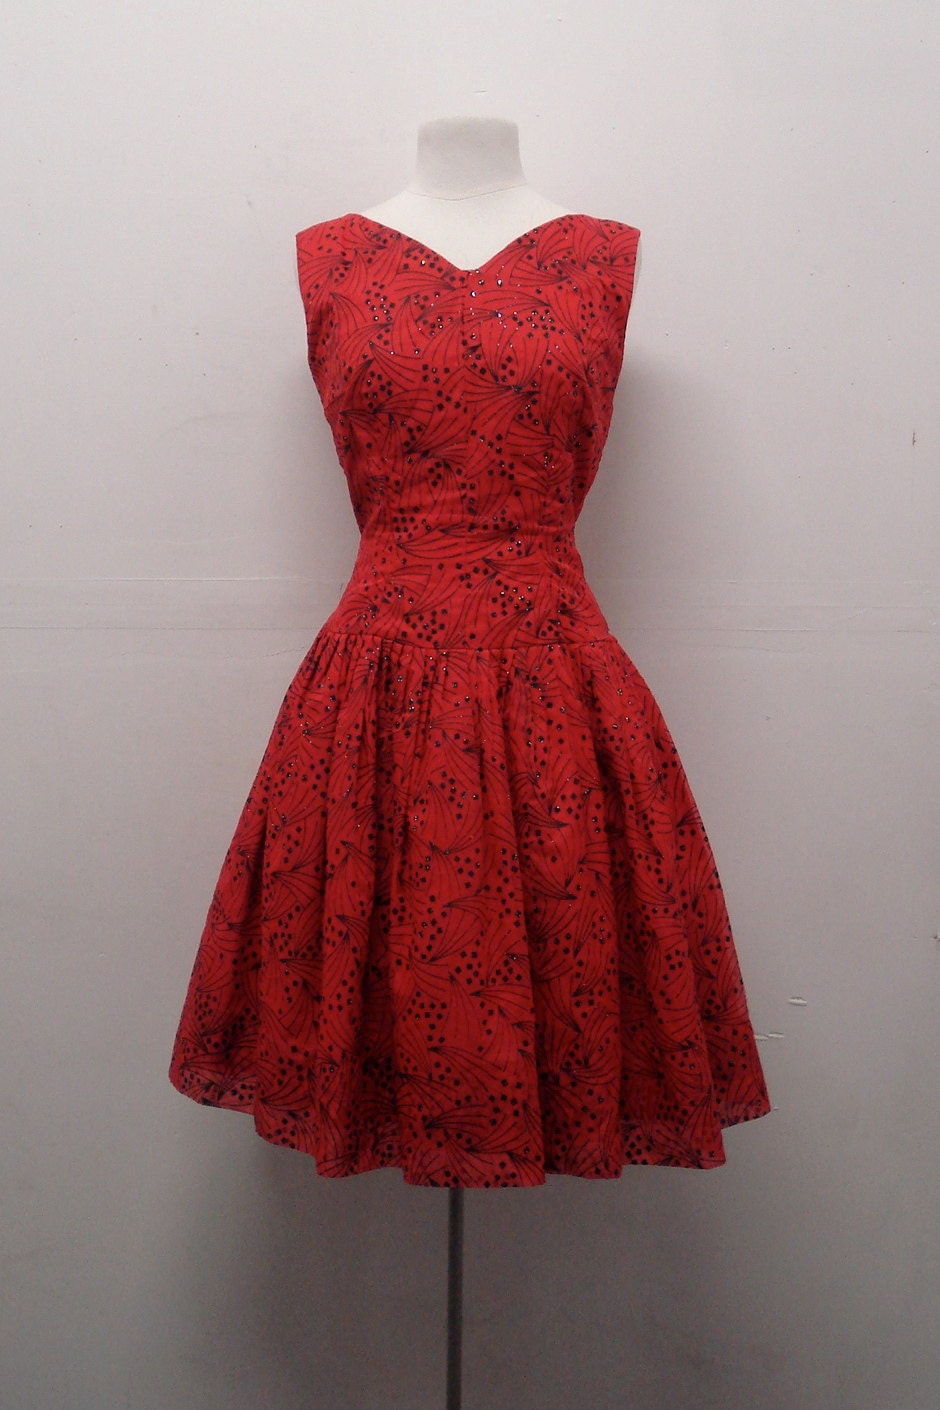 Vintage 1950s red cocktail dress with dropped waist